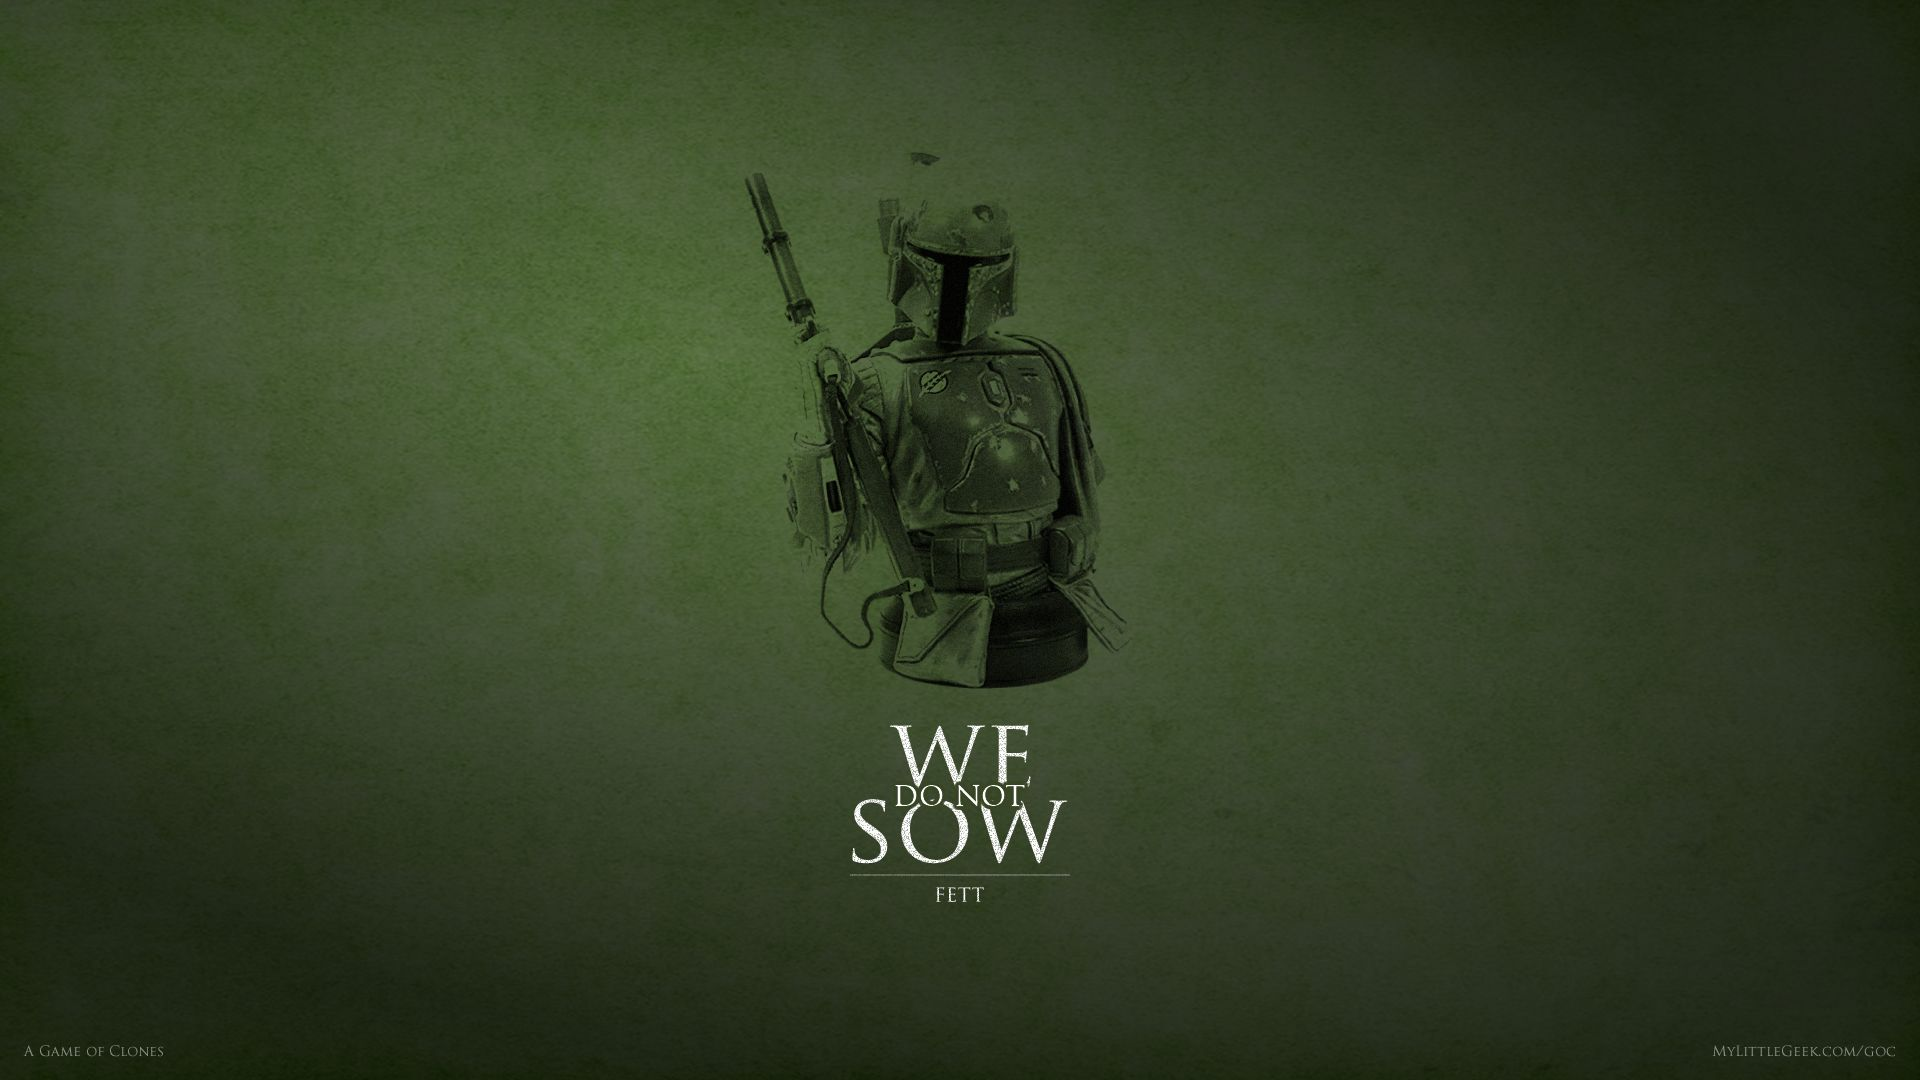 Game of Clones Star Wars Game of Thrones Mashup Wallpapers 1920x1080